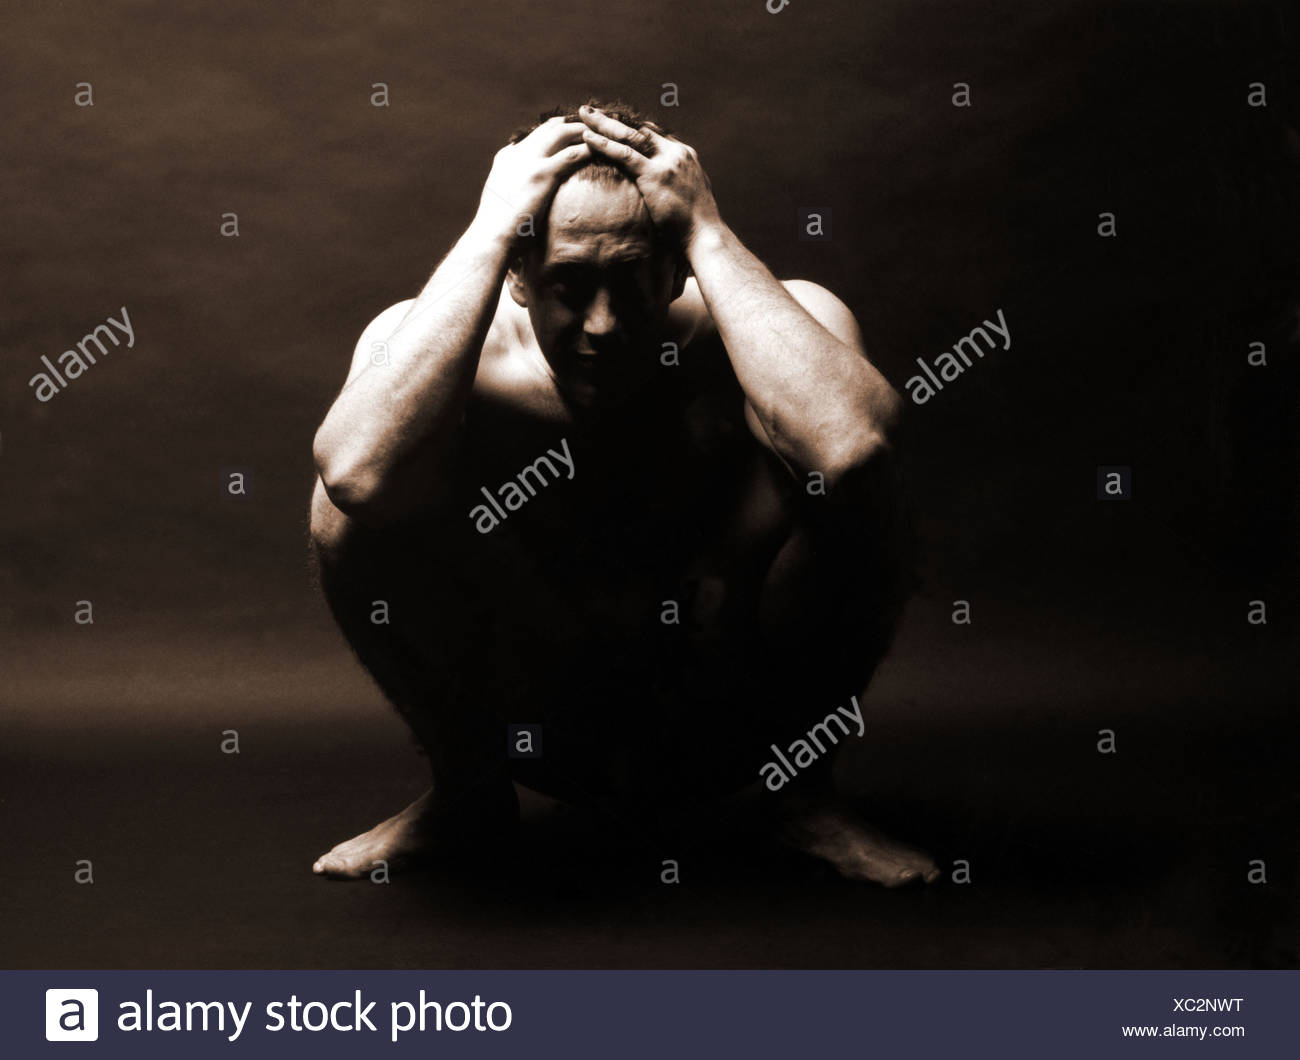 Man in desperation - Stock Image